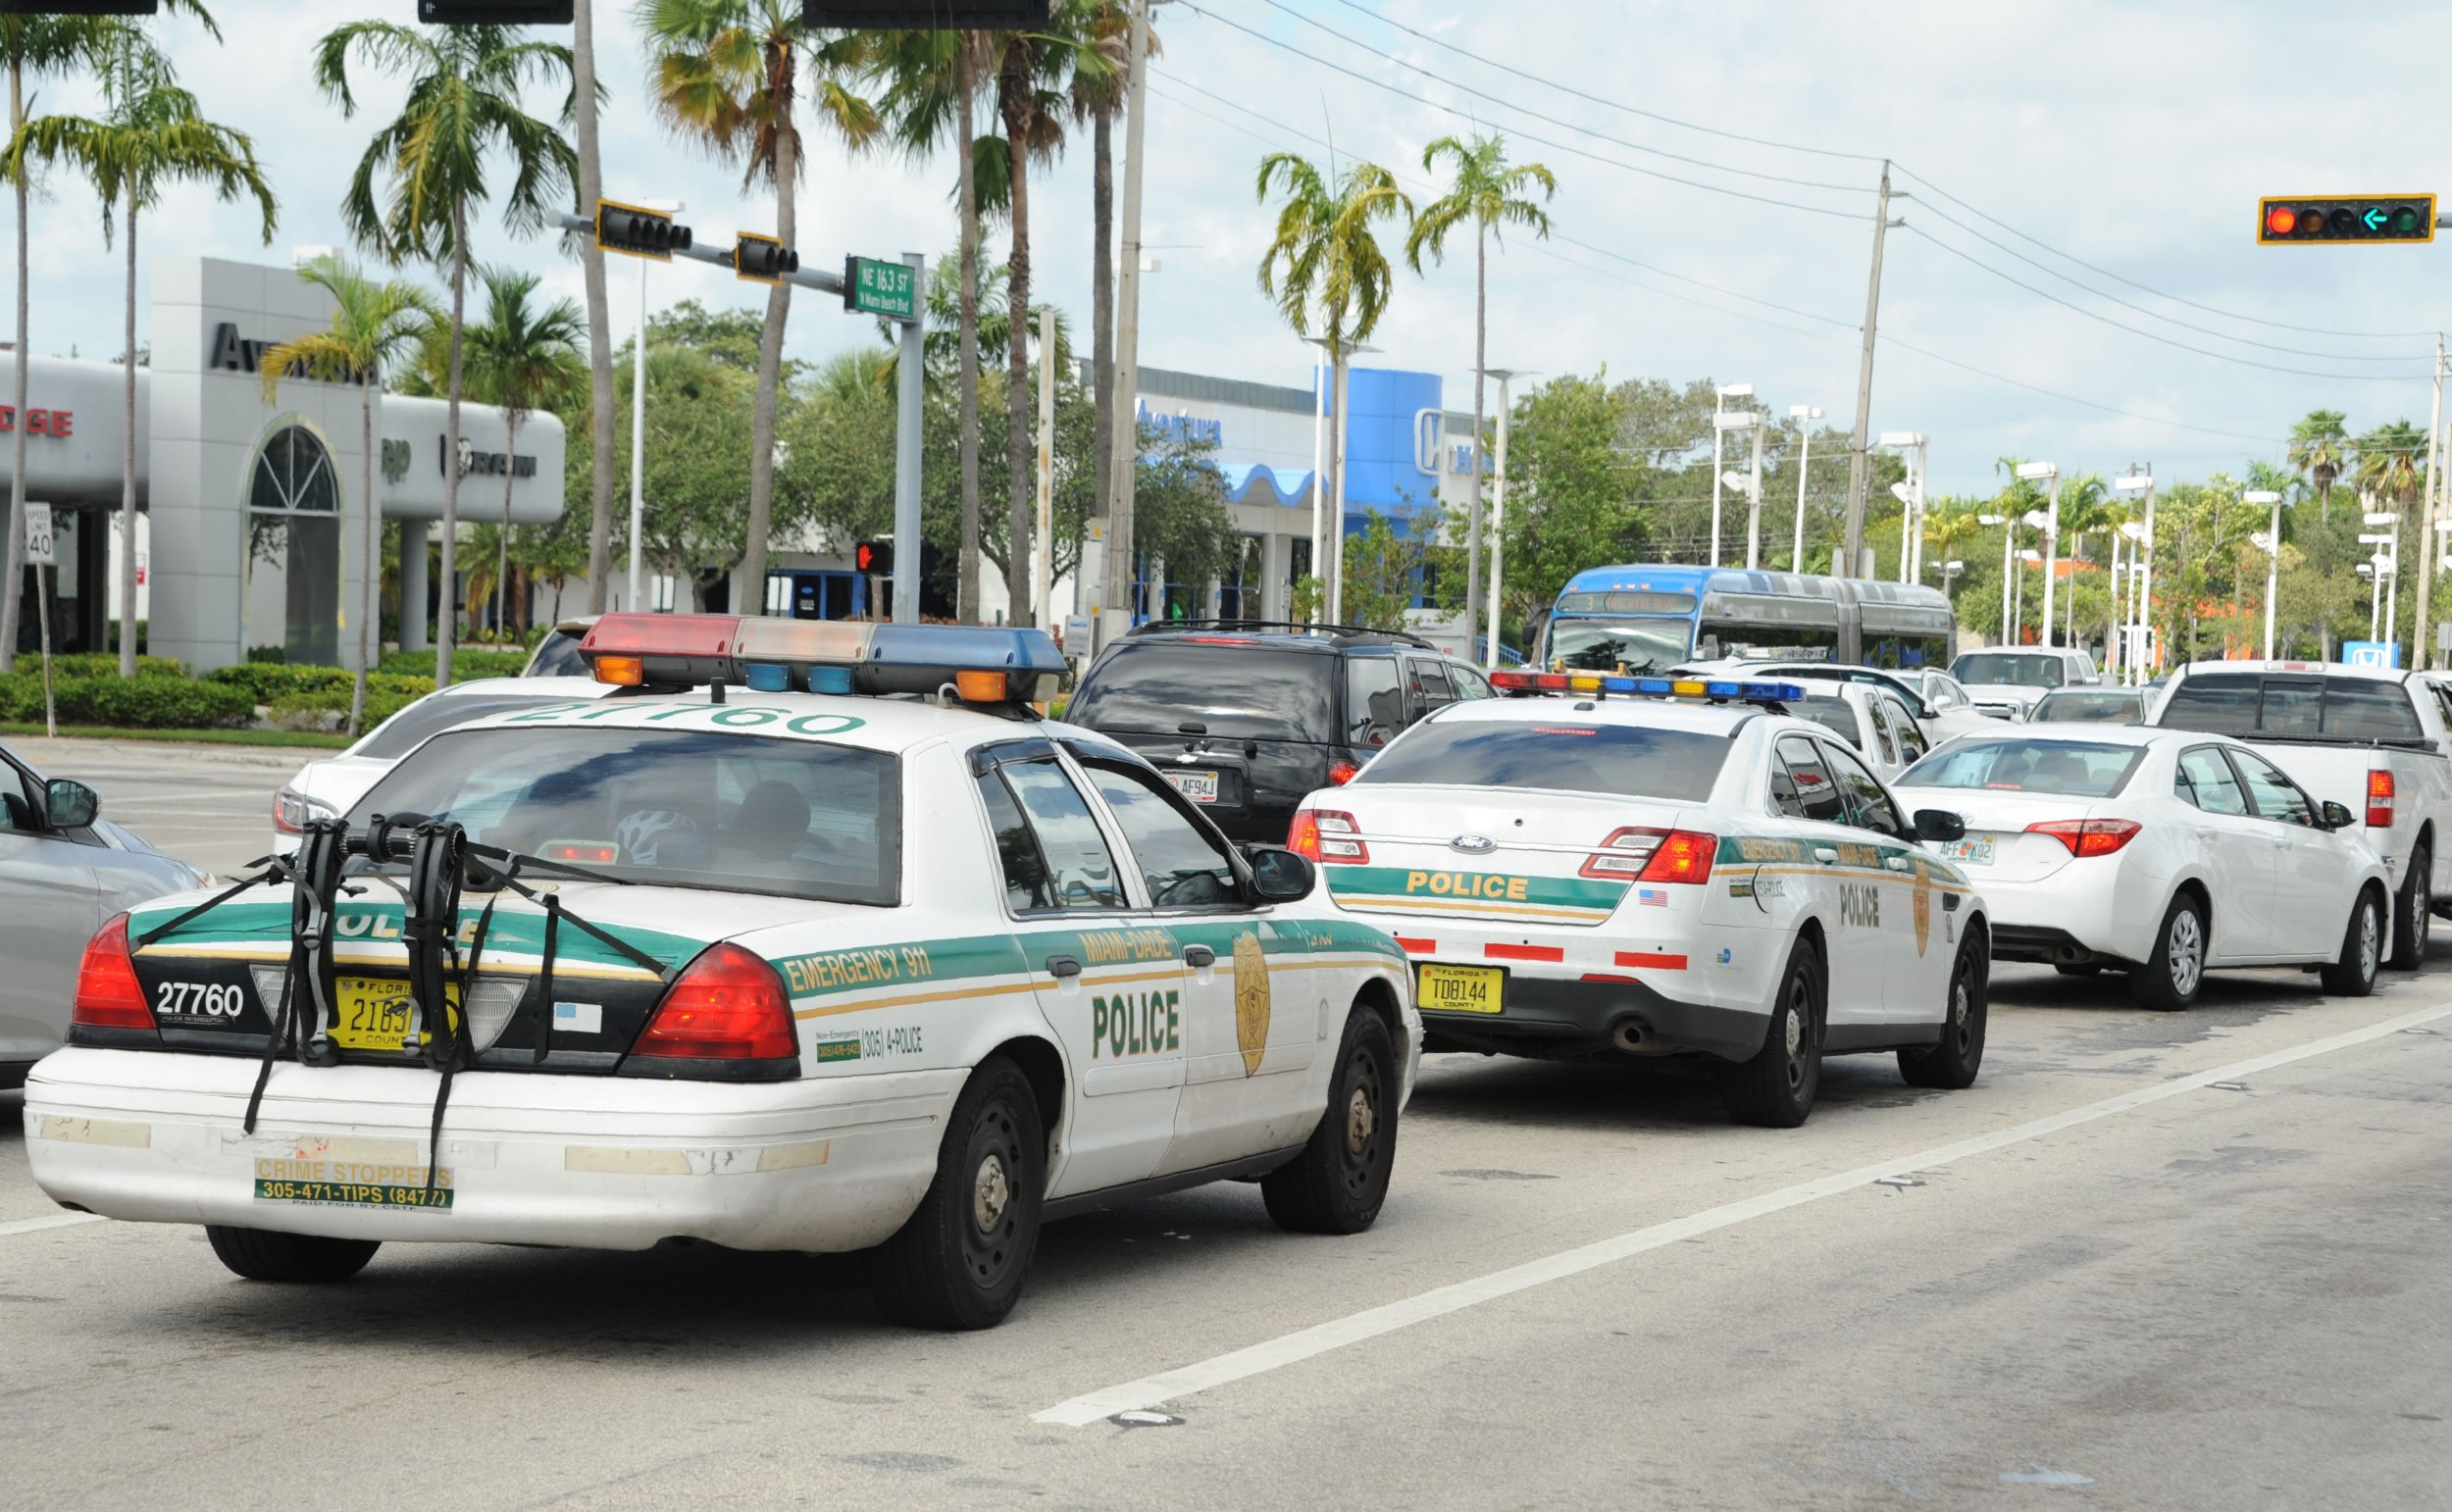 Several Protests Held Across South Florida Calling For End To Injustice Cbs Miami